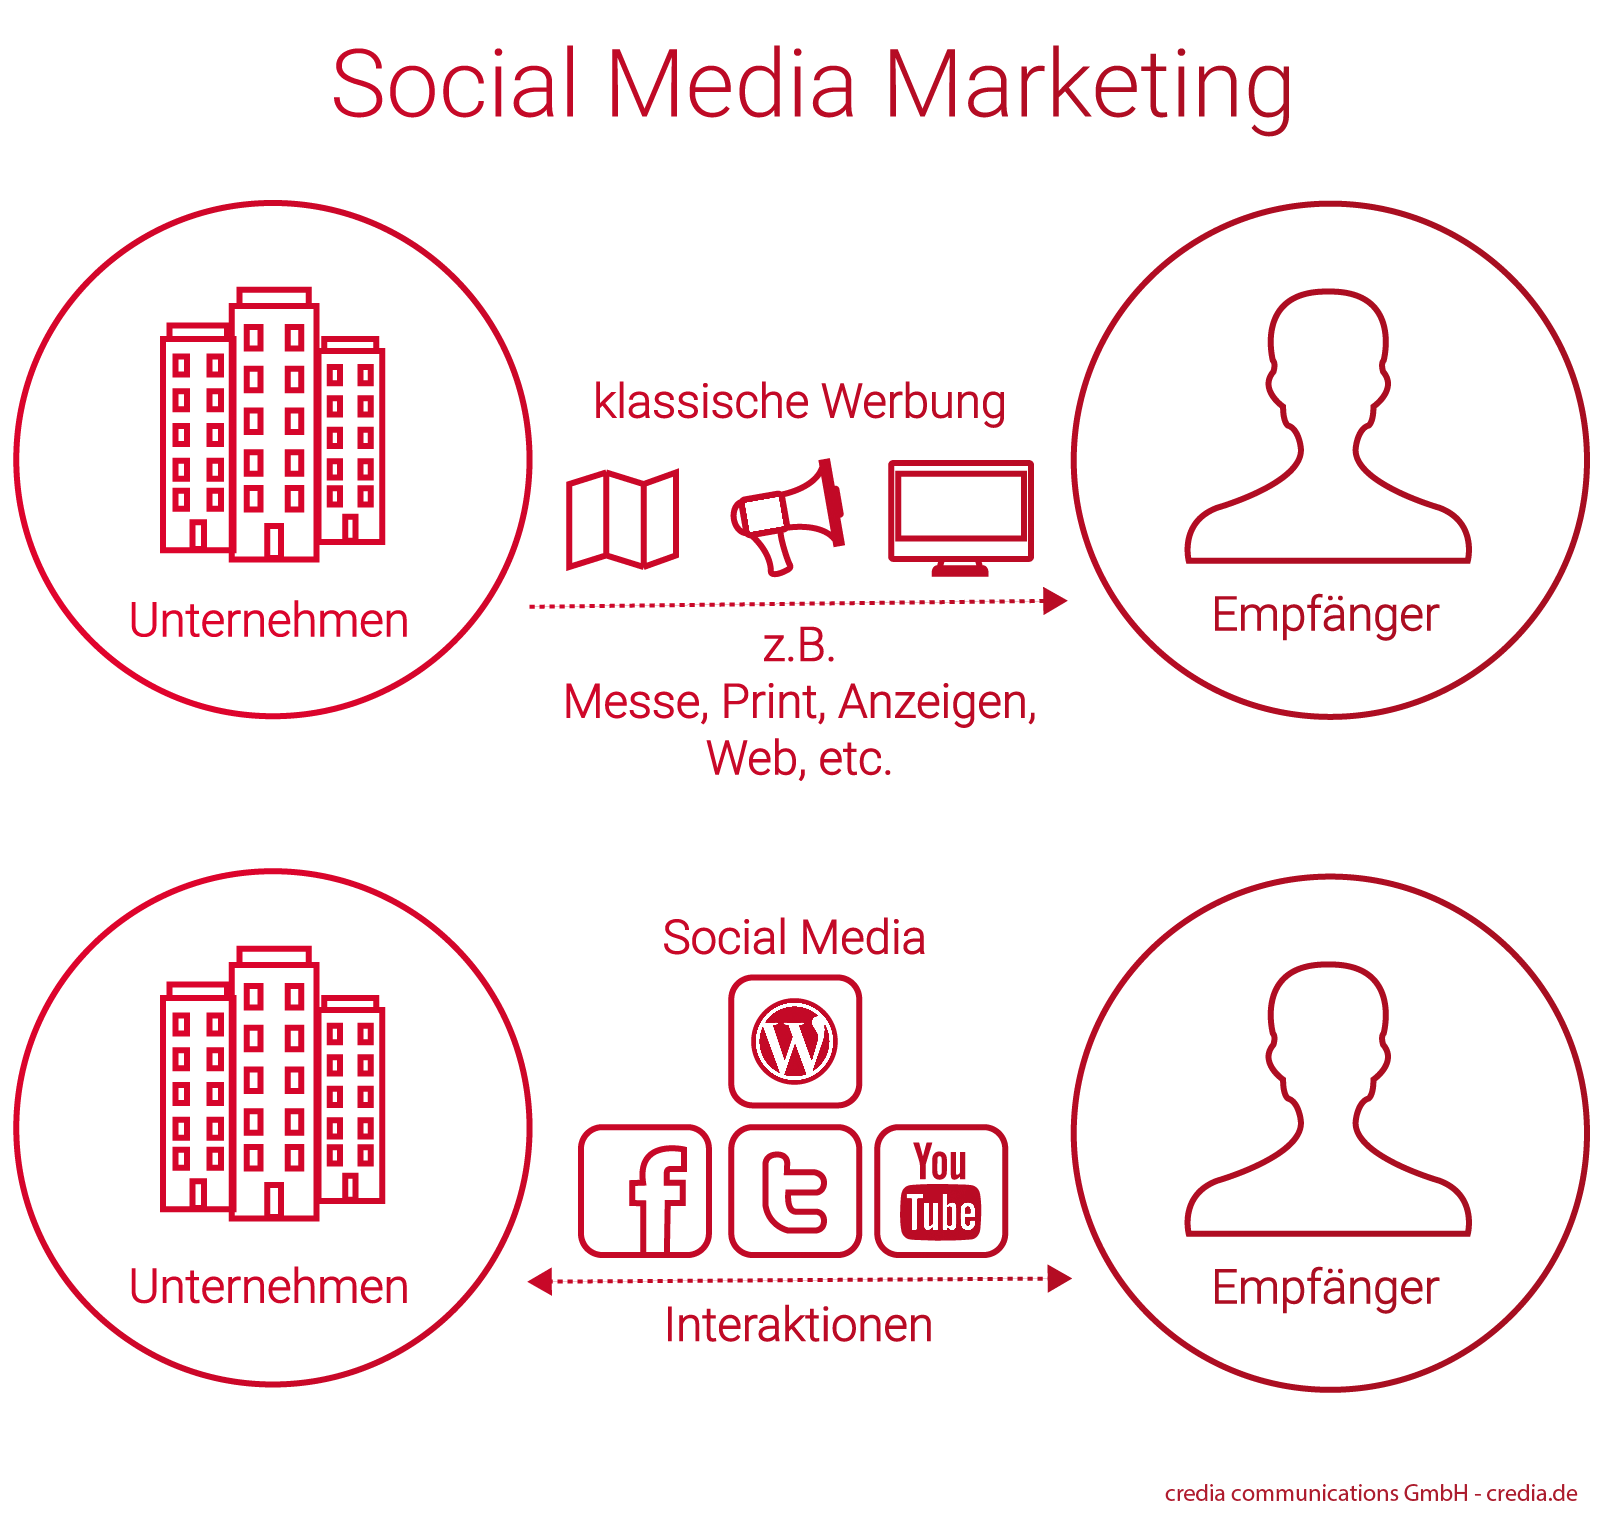 Social Media Marketing vs Klassische Werbung